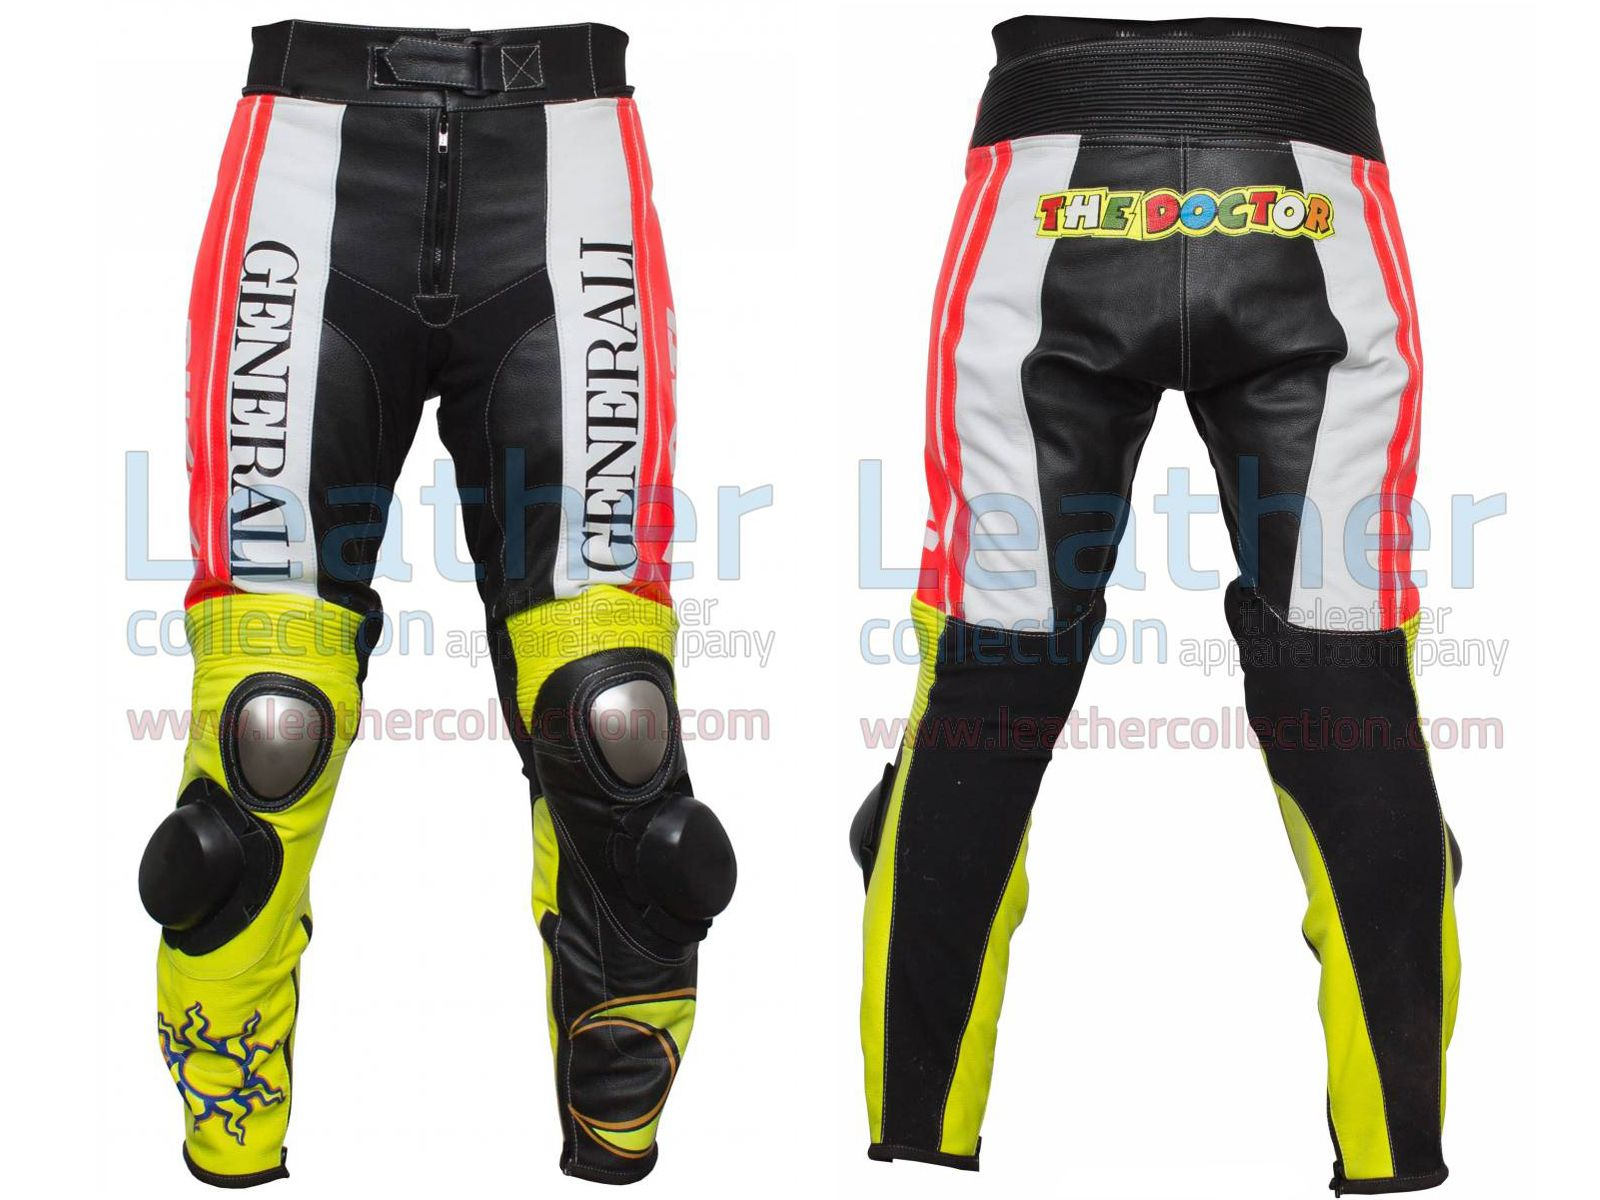 Valentino Rossi Ducati Corse Leathers Pants  https://www.leathercollection.com/en-we/valentino-rossi-ducati-corse-leathers-pants.html  #Ducati_Leather_Pants, #Valentino_Rossi_Ducati_Corse_Leathers_Pants, #Valentino_Rossi_Pants